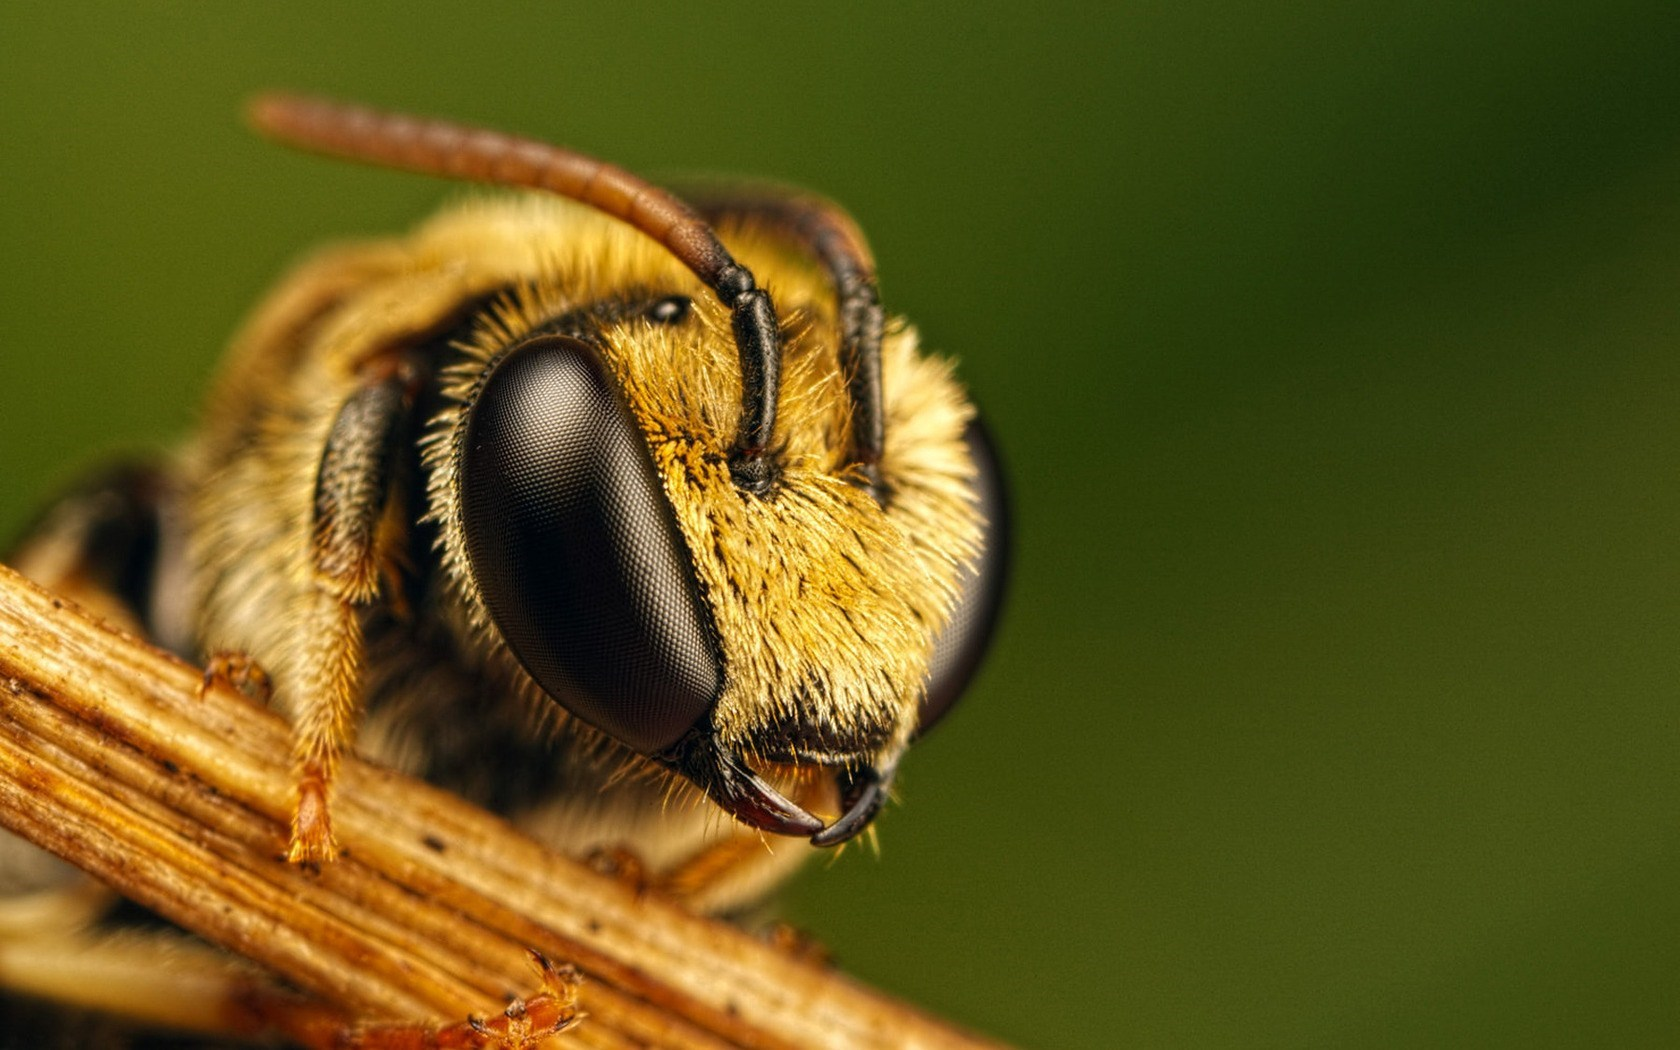 Bee Close-Up Photo